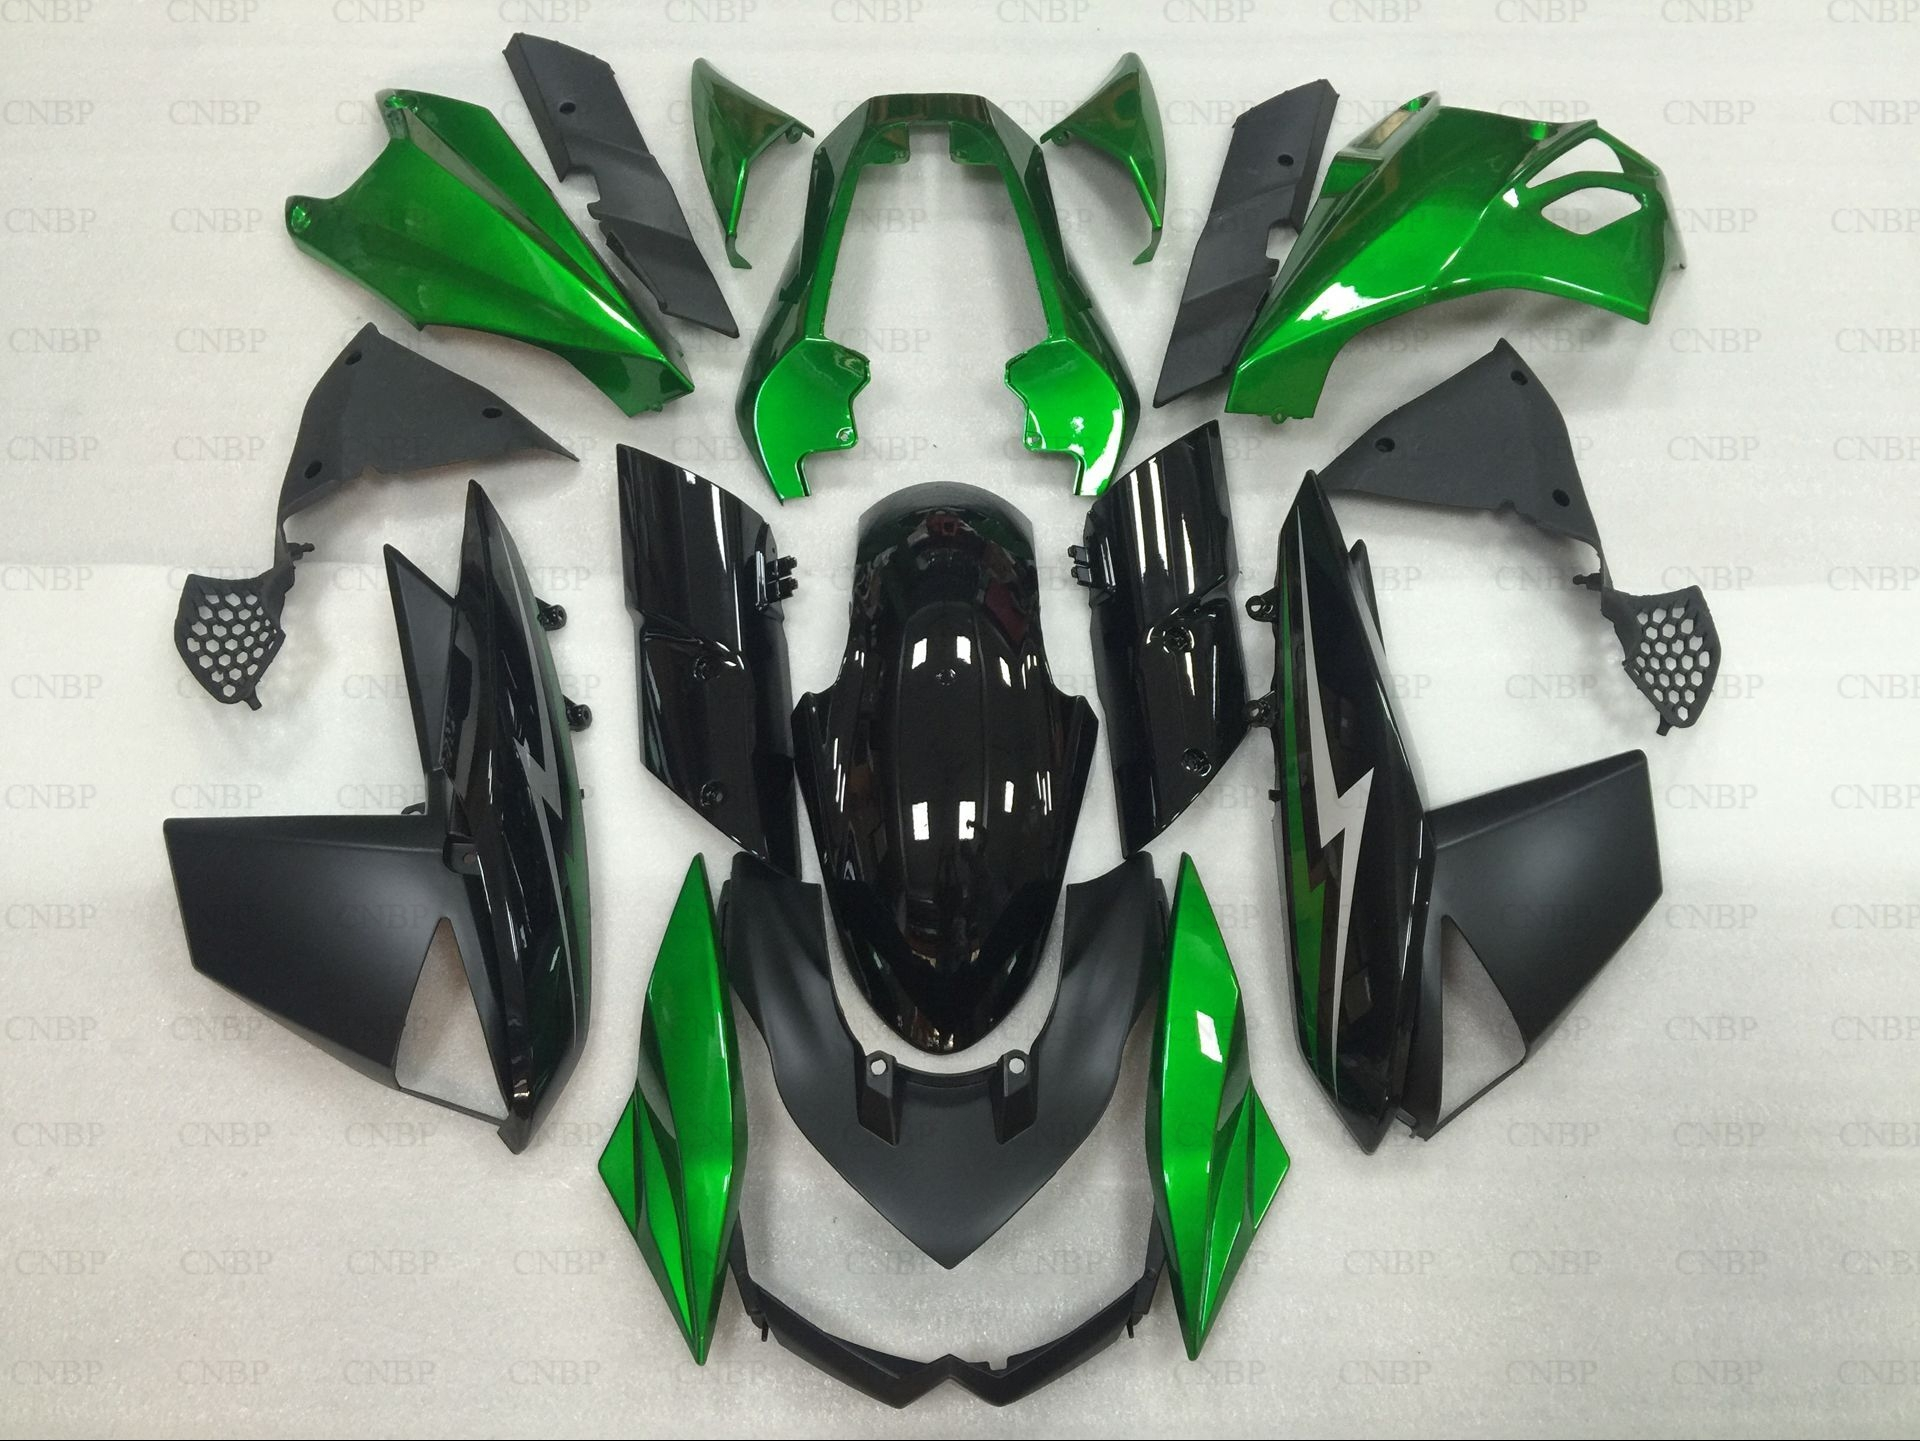 Bodywork for Kawasaki Z1000 2011 Abs Fairing Z 1000 2012 2010 - 2013 STREET EDITION Green Black Fairing for Kawasaki Z1000 12 13 kawasaki k 062 green 45